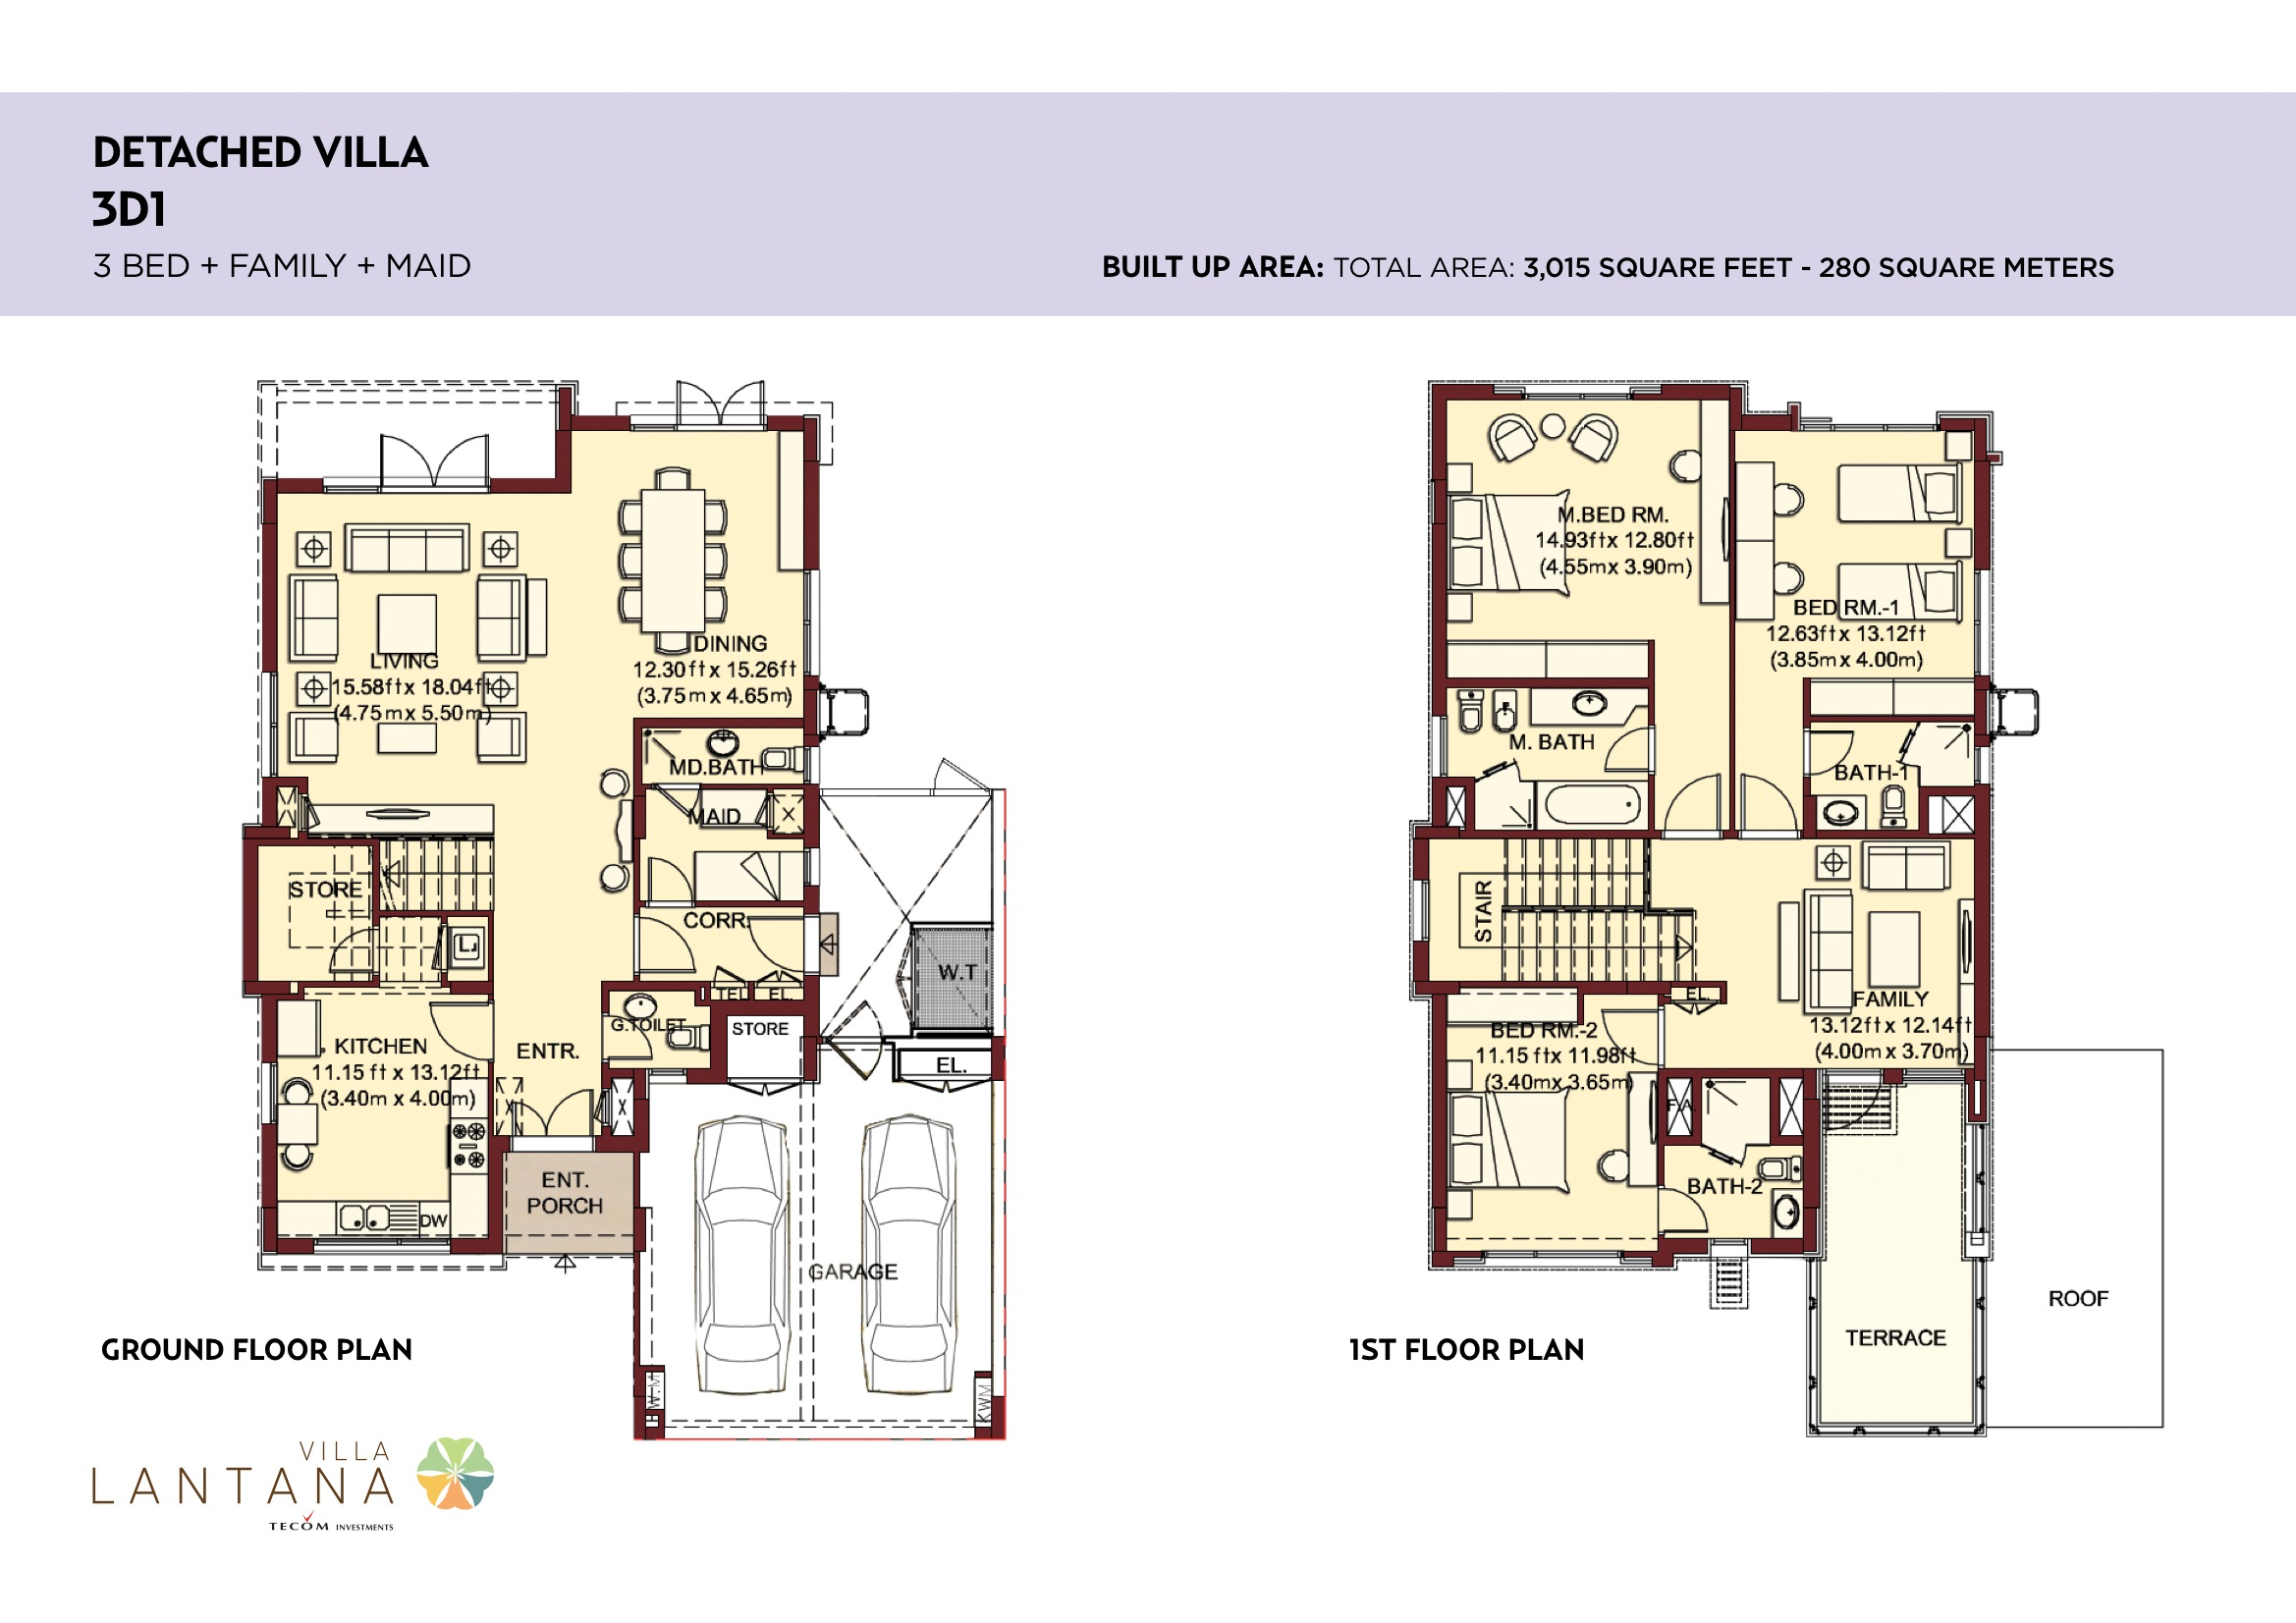 villa lantana floorplans jumeirah village circle jvc dubai world trade center floor plans new york city